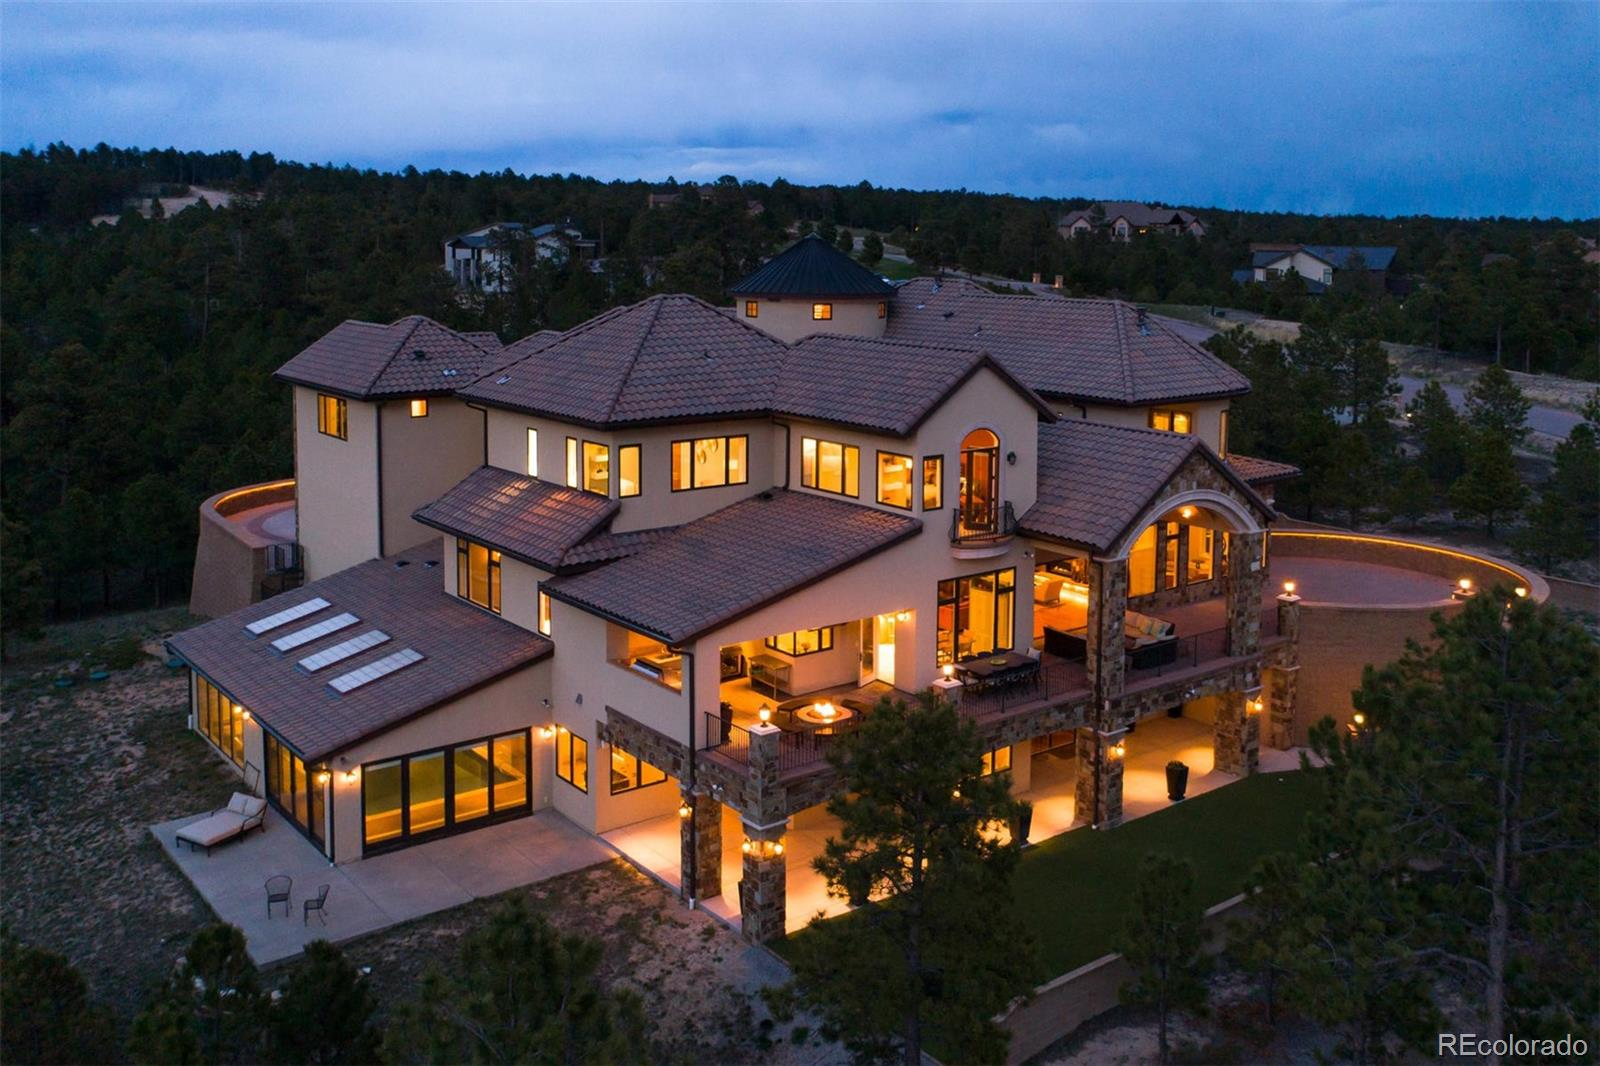 From the moment you enter this grand home, you will experience a feeling of calm.  A safe haven nestled in the Ponderosa Pines of the Black Forest. One of Cathedral Pines most unique homes, blending grand living with warmth and privacy. Stunning two story foyer showcases a floor to ceiling waterfall. Open Floor plan flows effortlessly with amazing light filled interior courtyard at the center of it all with snow melt and lighted stone tiles in the floor. Perfect home for entertaining both inside and out. Accordian doors from great room open to a beautiful covered deck.  Enjoy amazing views of the southern mountain range including Pikes Peak. Two outdoor kitchens, full butlers pantry with easy access to kitchen & dining room. Amazing chef's kitchen with two large entertaining islands and high end appliances.  Two master suites one on the main floor and one upstairs  with views, walk-in closet and jetted tub. Large lower level entertainment area with theater room and separate arcade room. Custom wet bar and wine room with seating. Salt water pool and sauna  located with easy access to workout room. Two ensuite bedrooms complete the lower level.  A perfect combination of spaciousness and privacy.